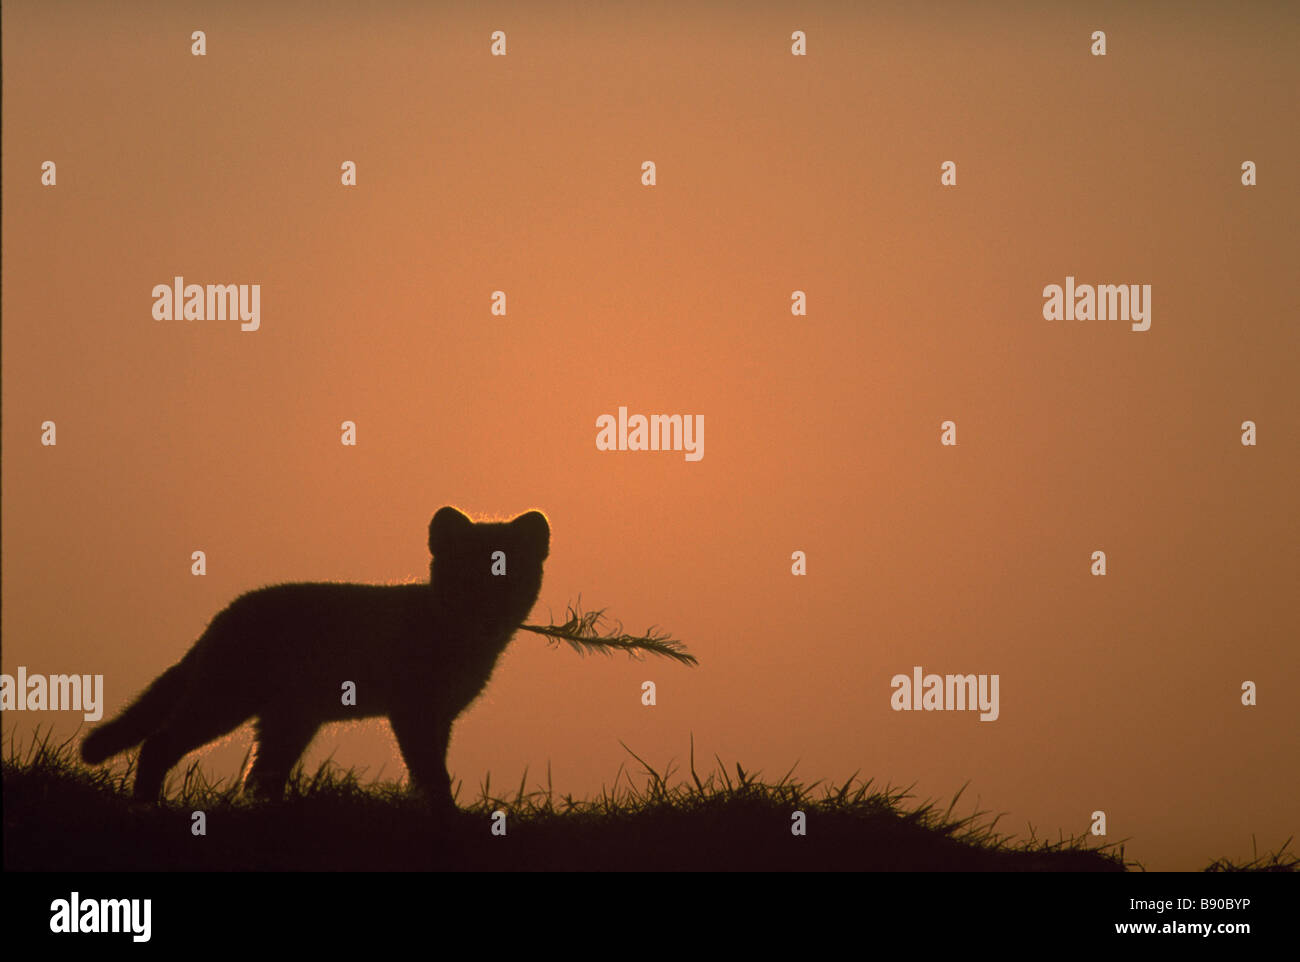 FL1100, BD Productions; Silhouette Wild Animal - Stock Image